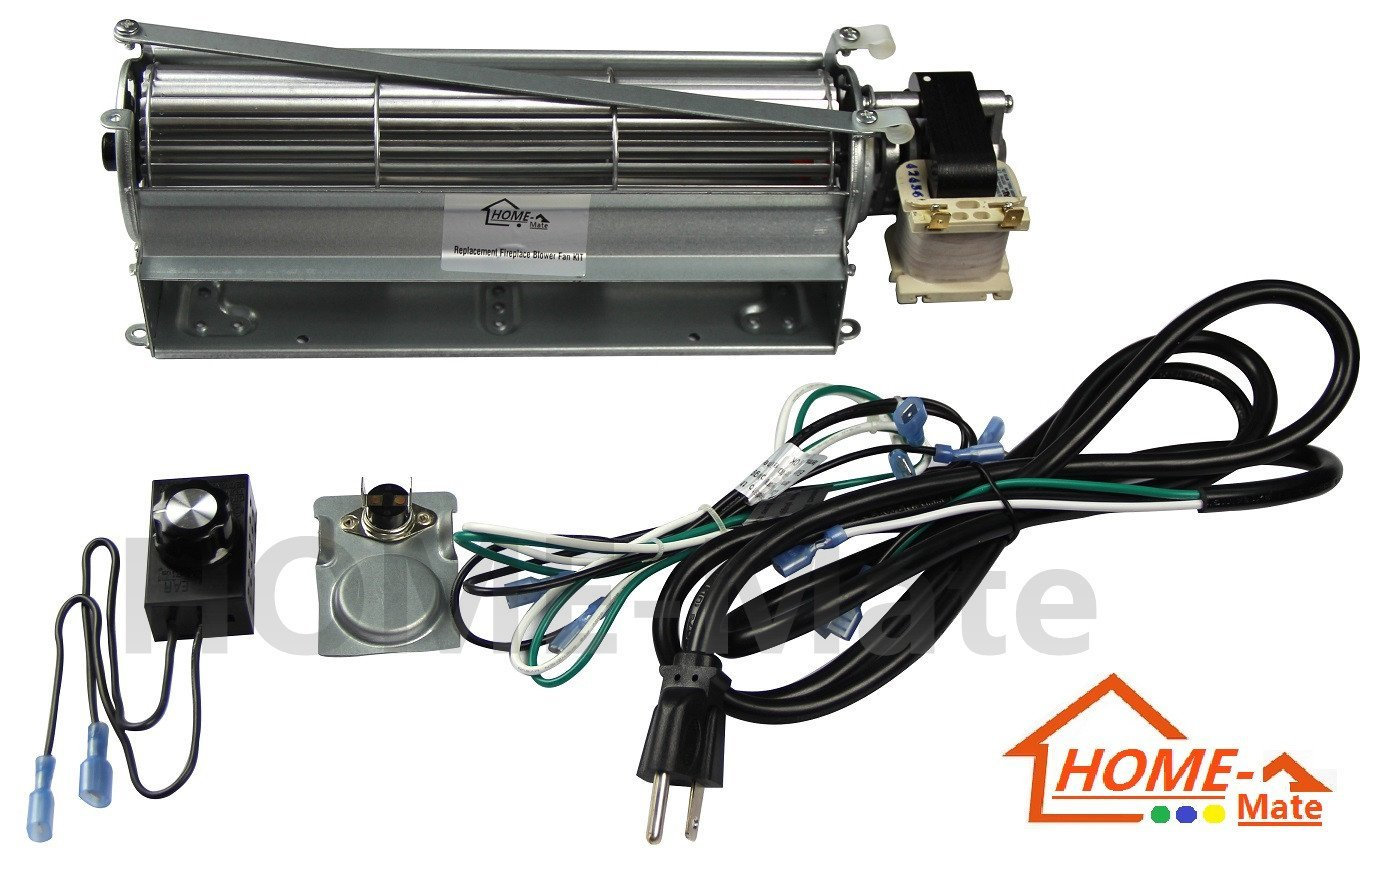 furnace and inc kit furnaces grate fireplace blower